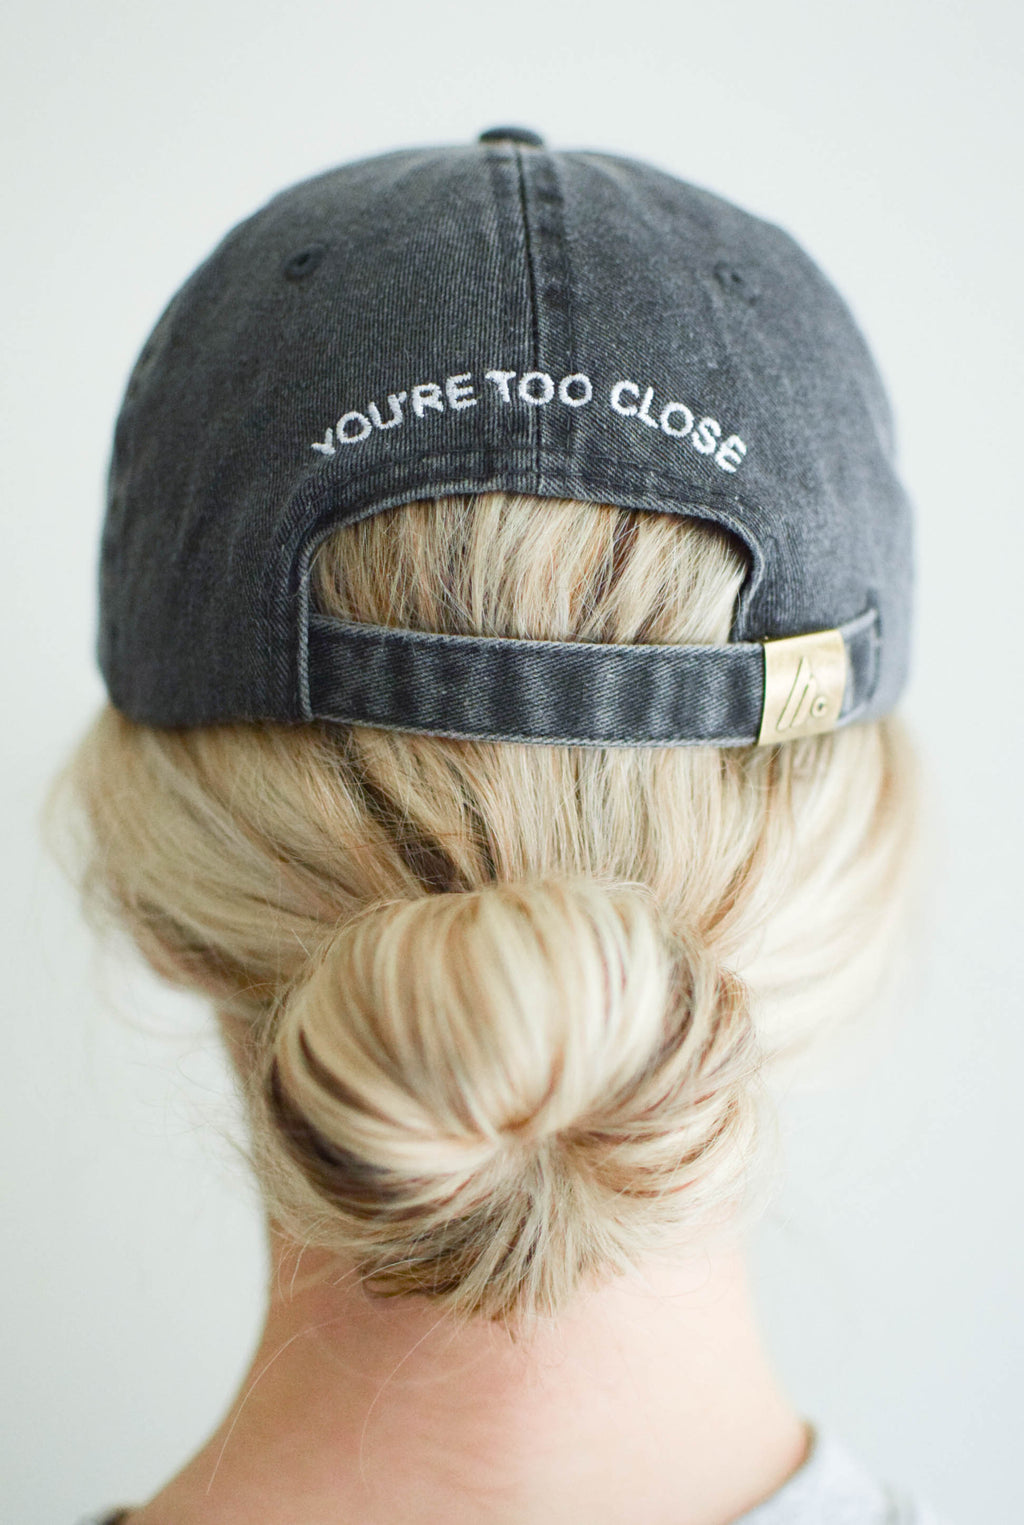 'You're Too Close' Baseball Hat - Vintage Black